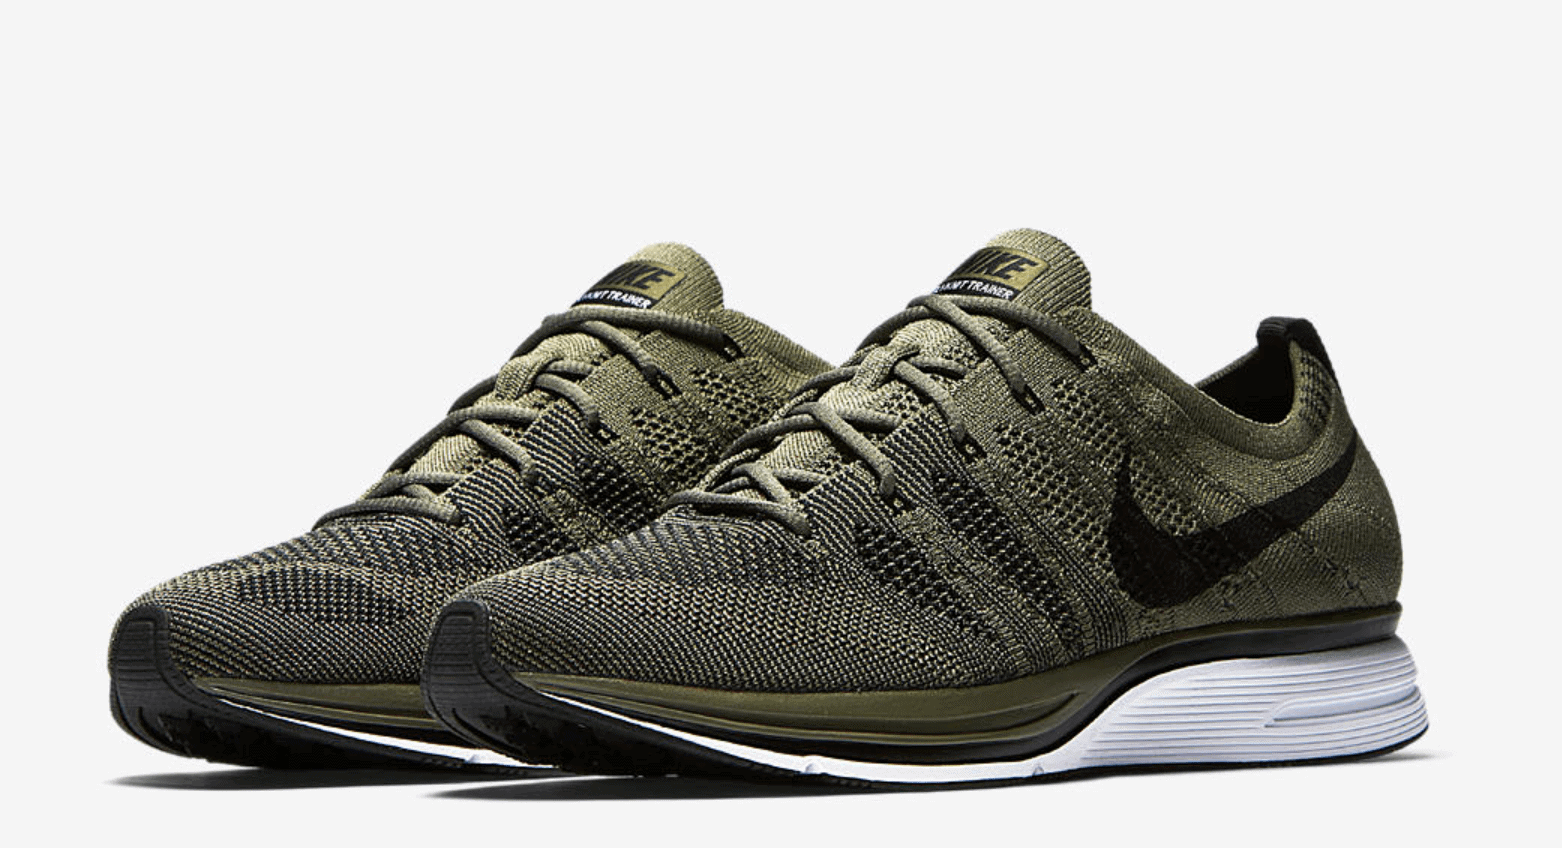 dac03b65e529f The Nike Flyknit Trainer is making a comeback this year. After a less than  stellar return to glory last year